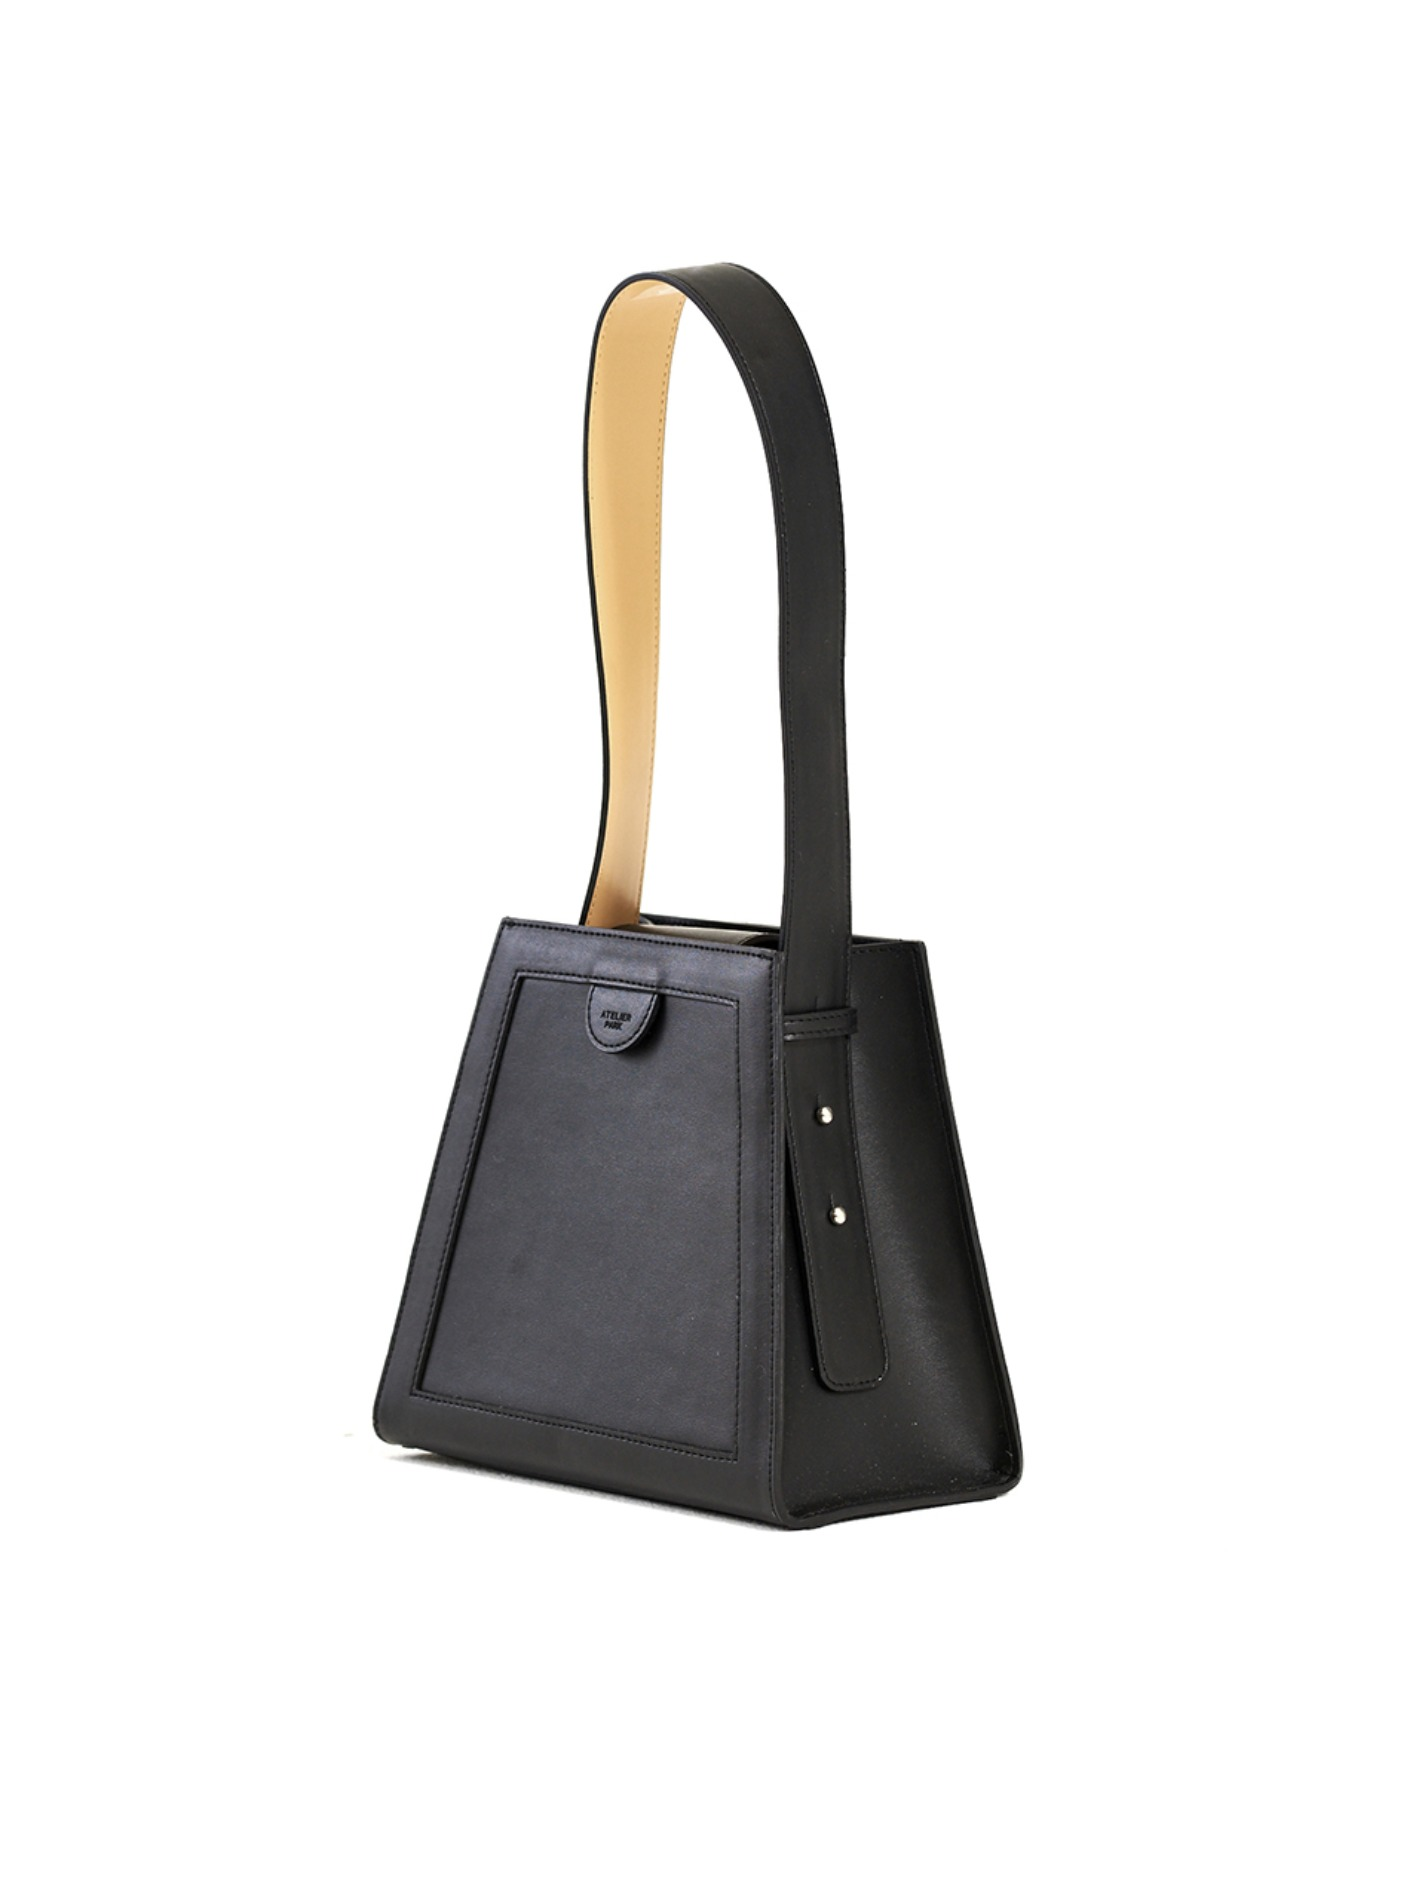 GEO BAG_BLACK/BEIGE